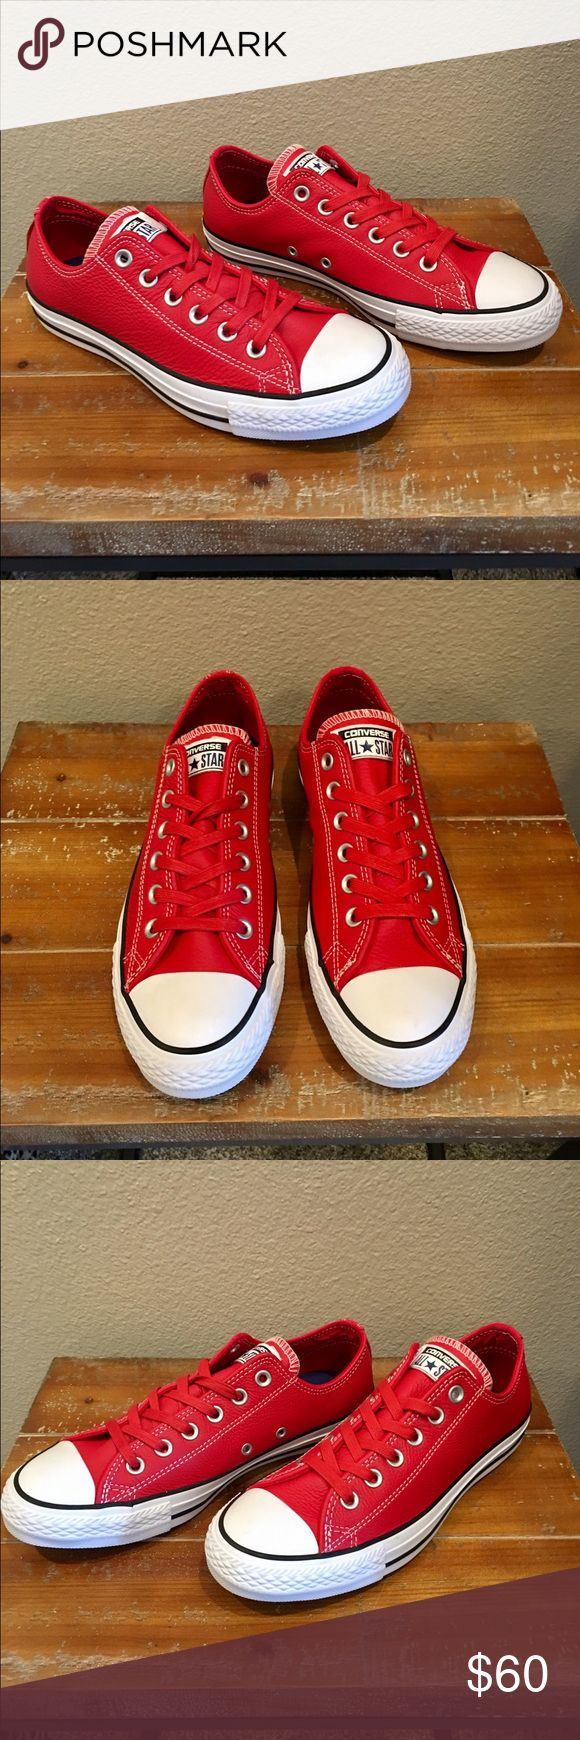 RED LEATHER CONVERSE NWOB, never worn, nothing cooler than red kicks to show your sassy style❣️I saw these on a lady with boyfriend jeans and a tank and became obsessed! They scream style, confidence and originality! Red leather low top cons, red coated laces, black stripe on white walls, silver eyelets. Mad love❤️Women's sizing. Converse Shoes Sneakers